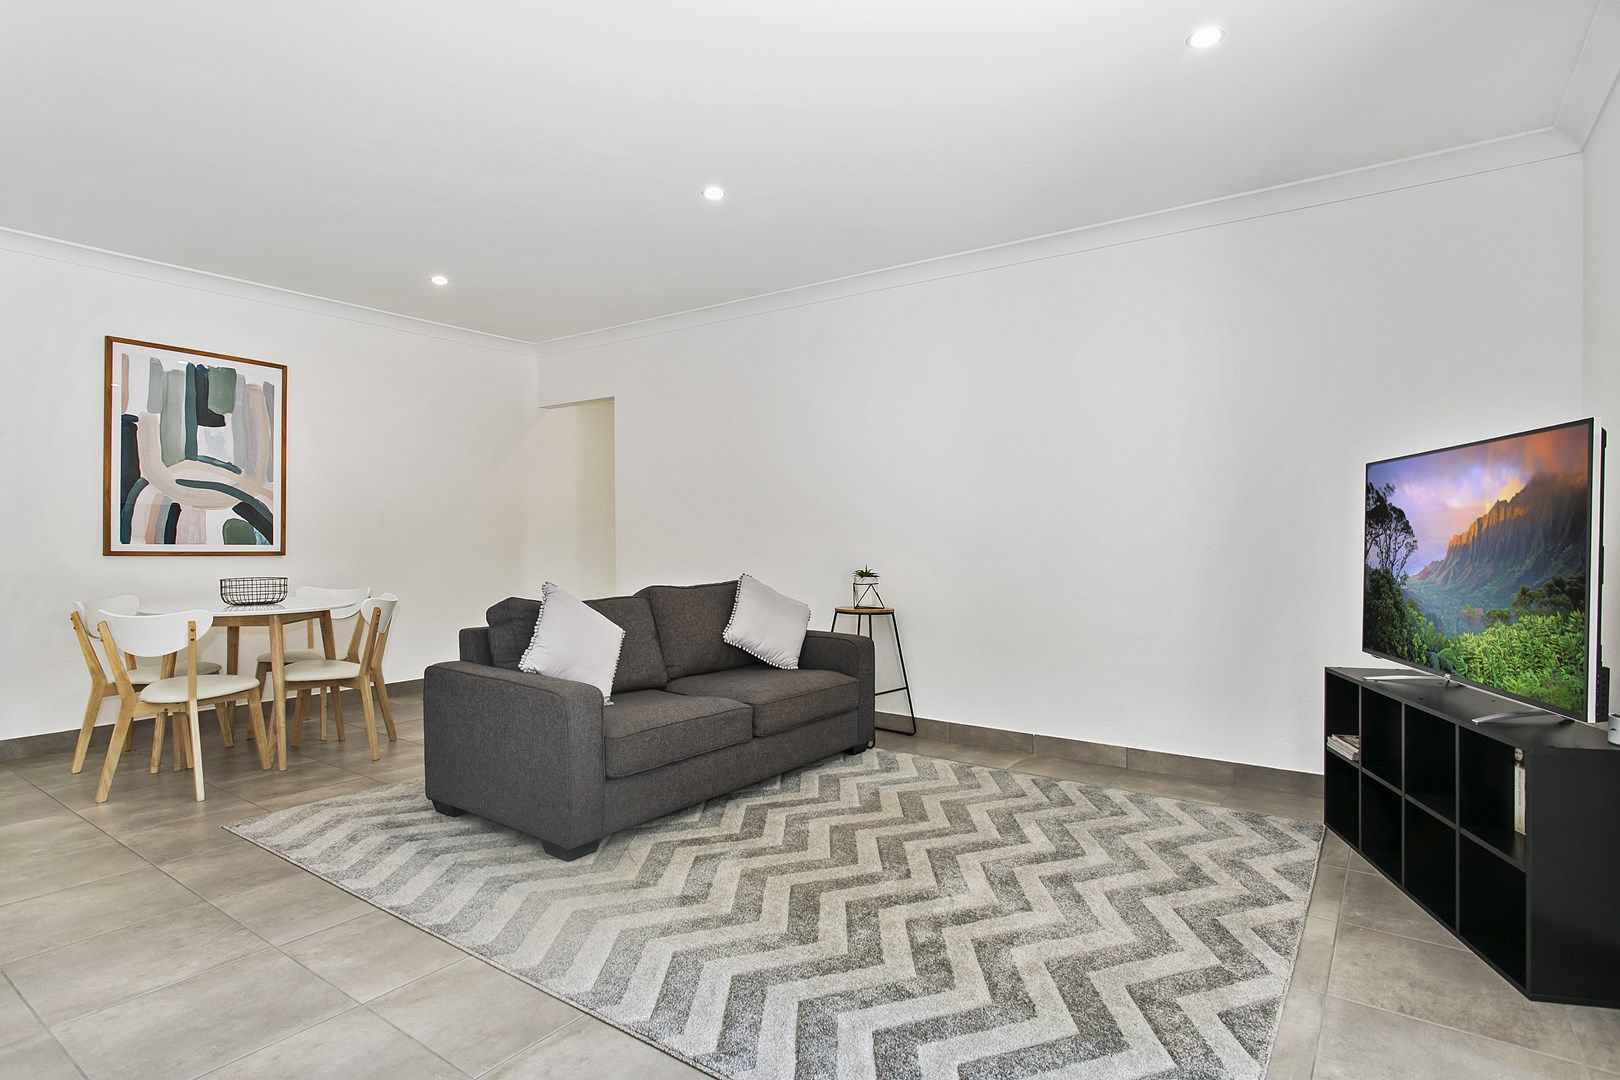 2/54 Burchmore Road, Manly Vale NSW 2093, Image 0